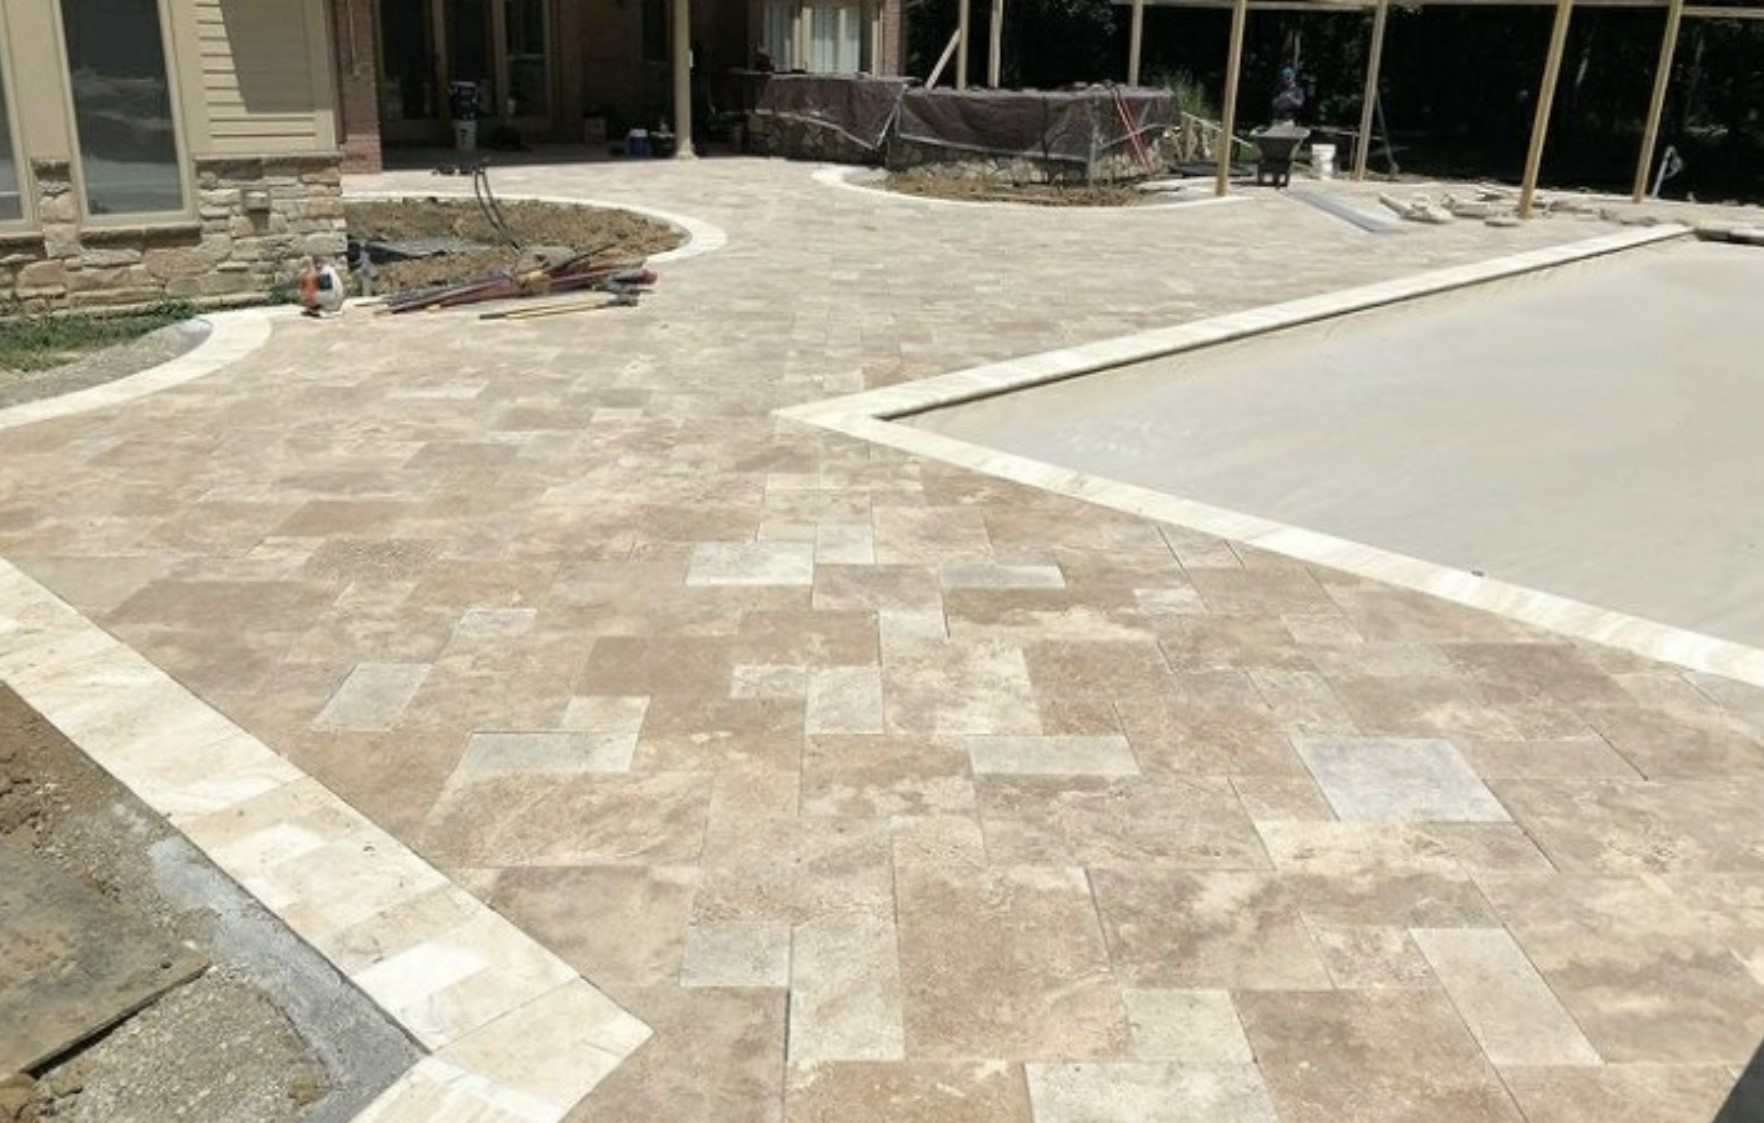 this image shows patios in concord, california